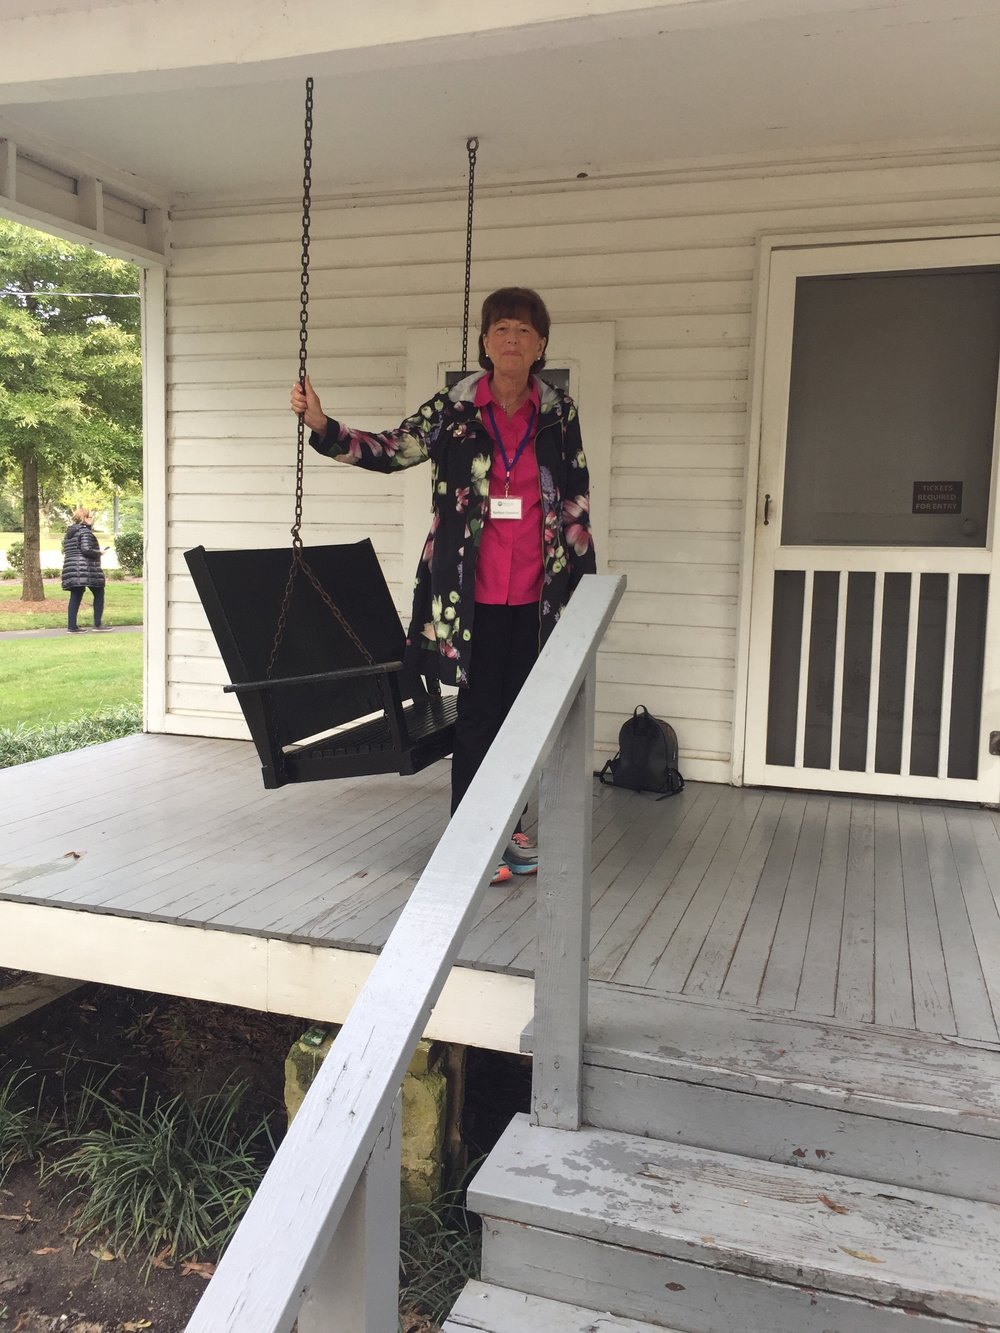 Barbara at the birthplace of Elvis